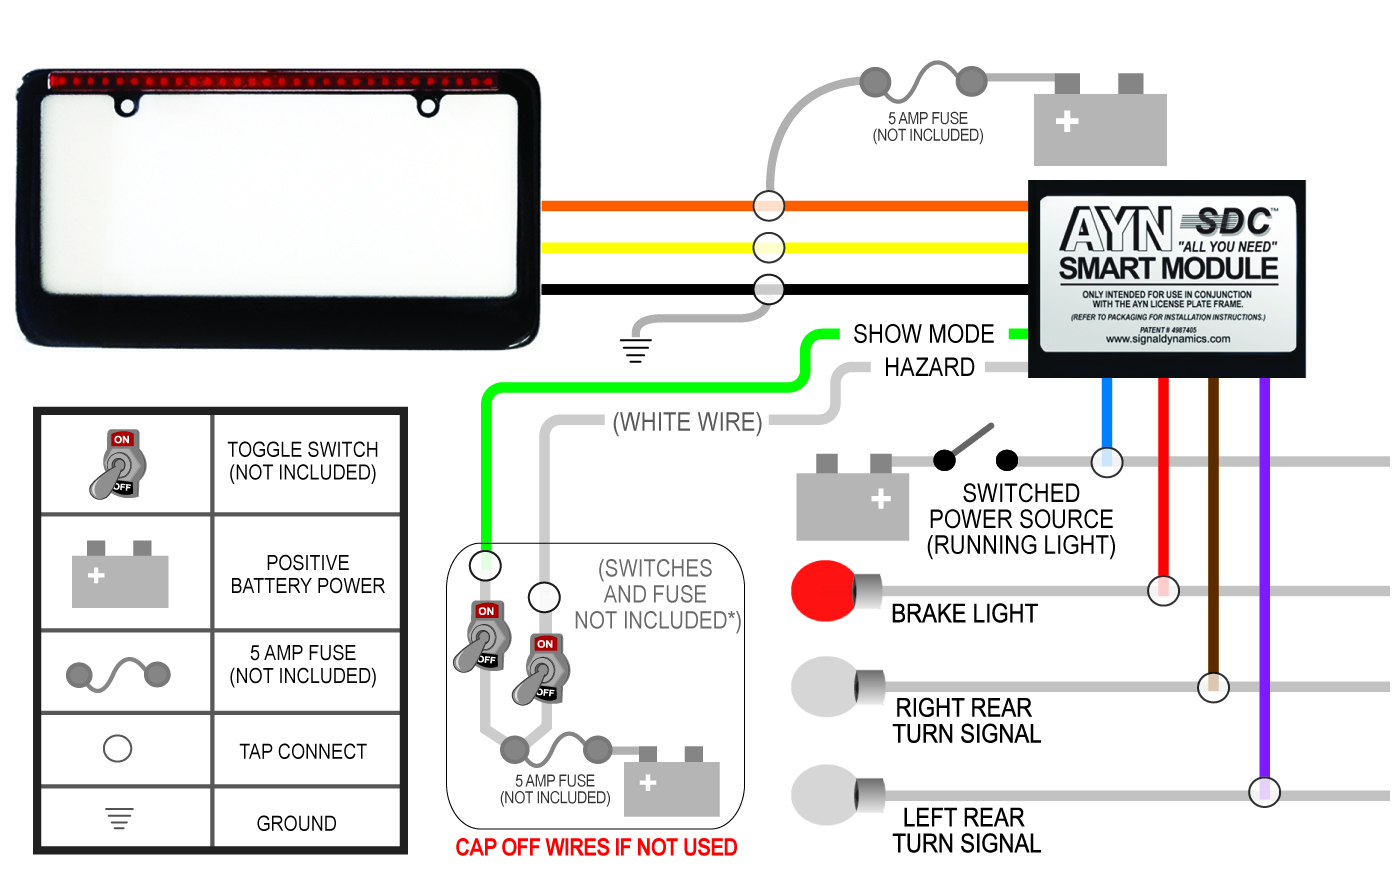 black auto wiring diagram?t=1399476781 black ayn automotive license plate frame & smart module combo Basic Turn Signal Wiring Diagram at mr168.co